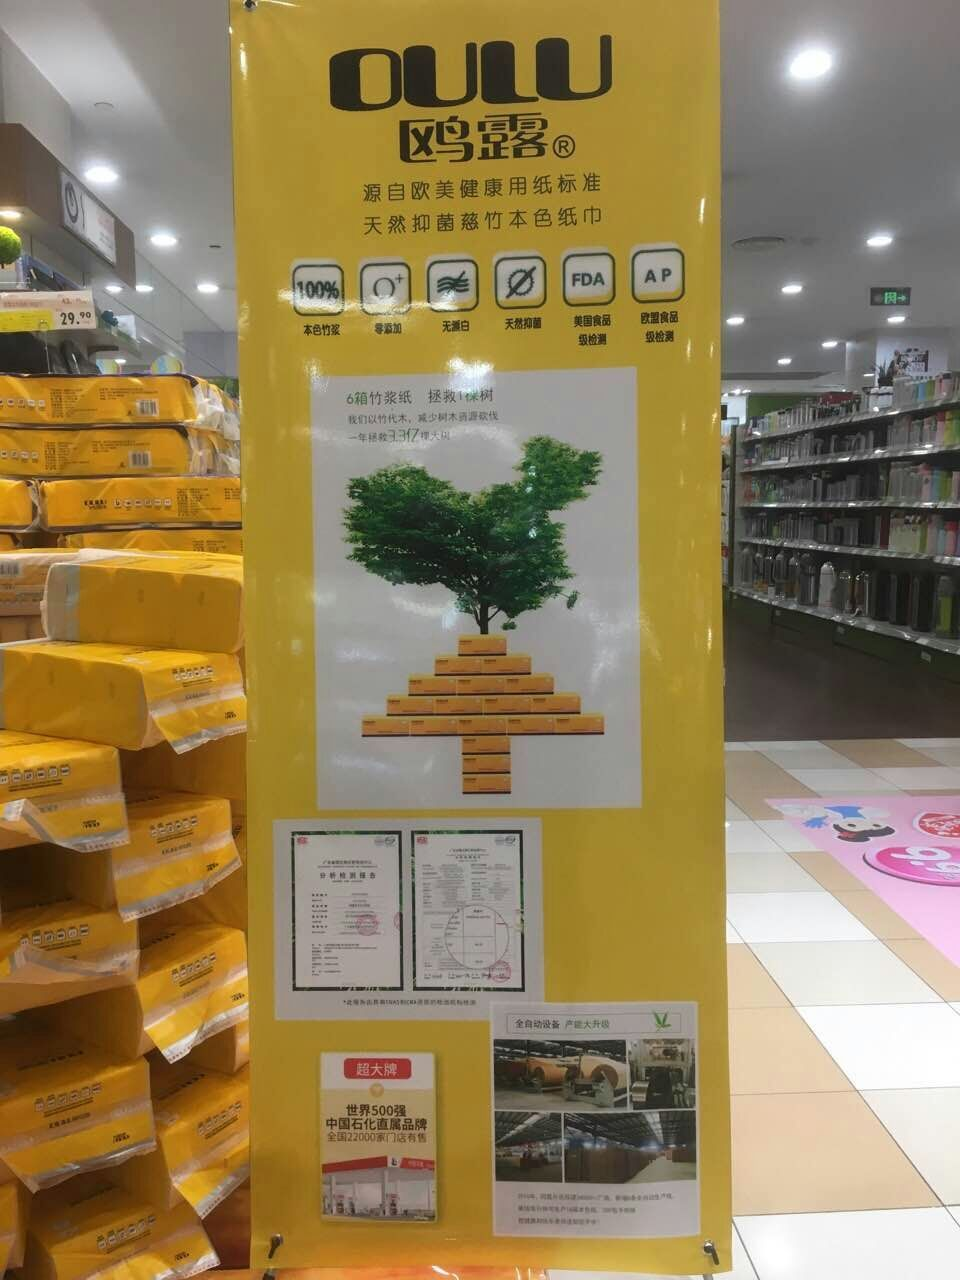 our oulu brand unbleached bamboo paper products are selling in whole china sinopec gas station easyjoy superstores carrefour renrenle walmart in china and other